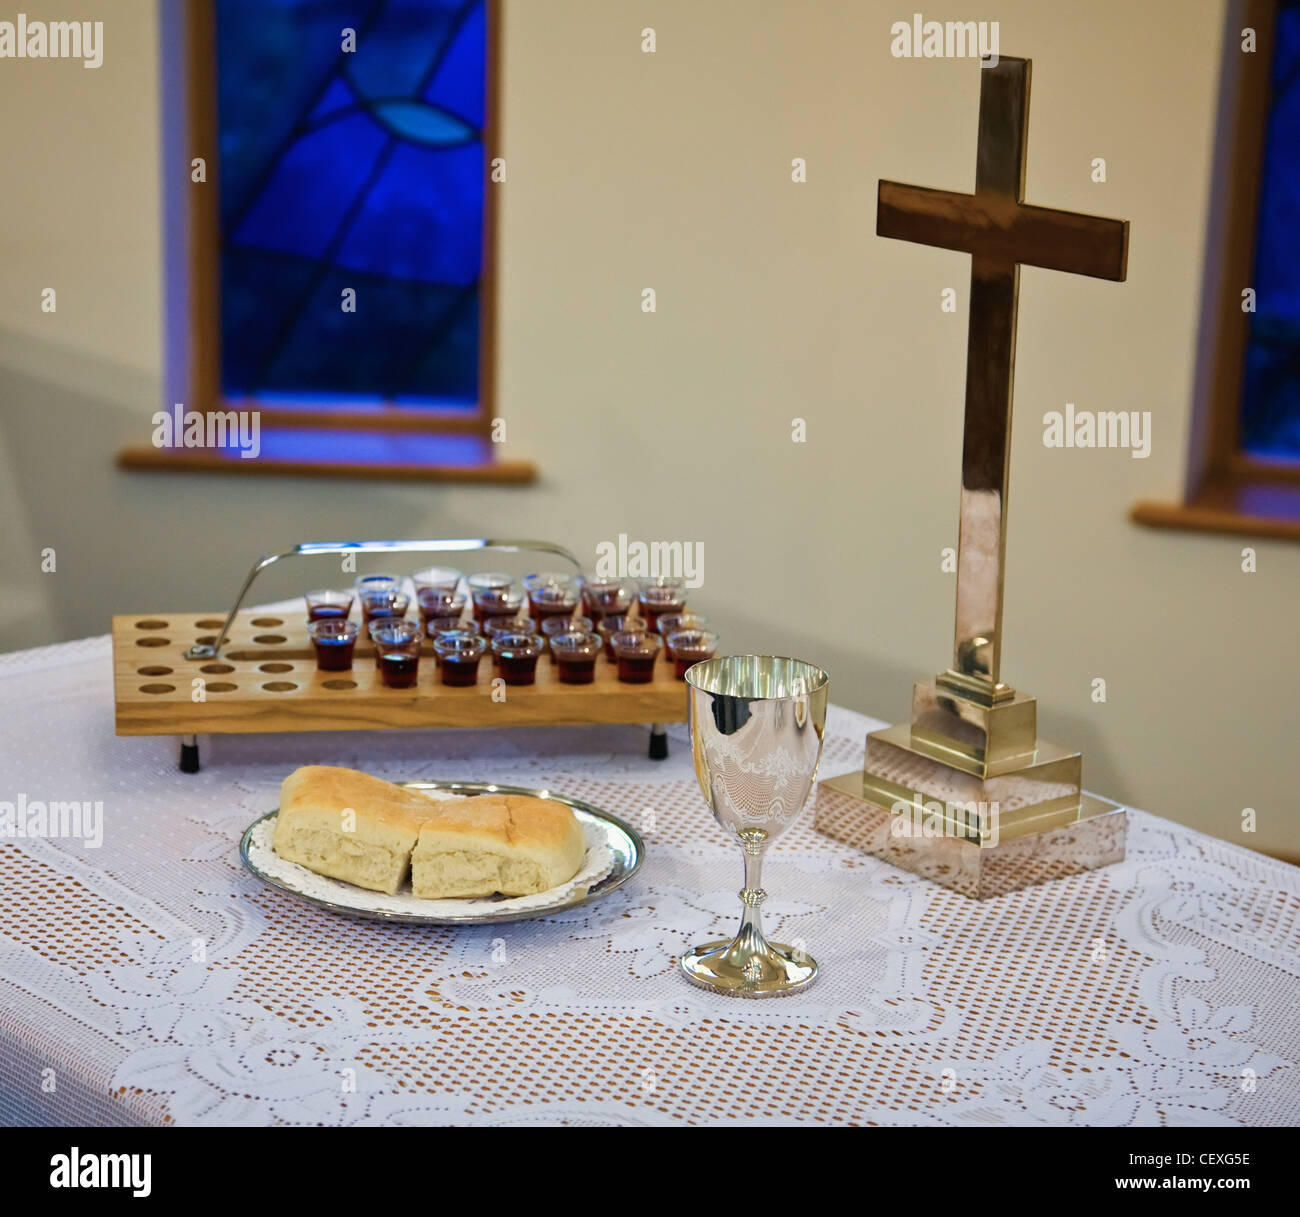 communion emblems set up on a table with a cross; sheffield, south yorkshire, england - Stock Image